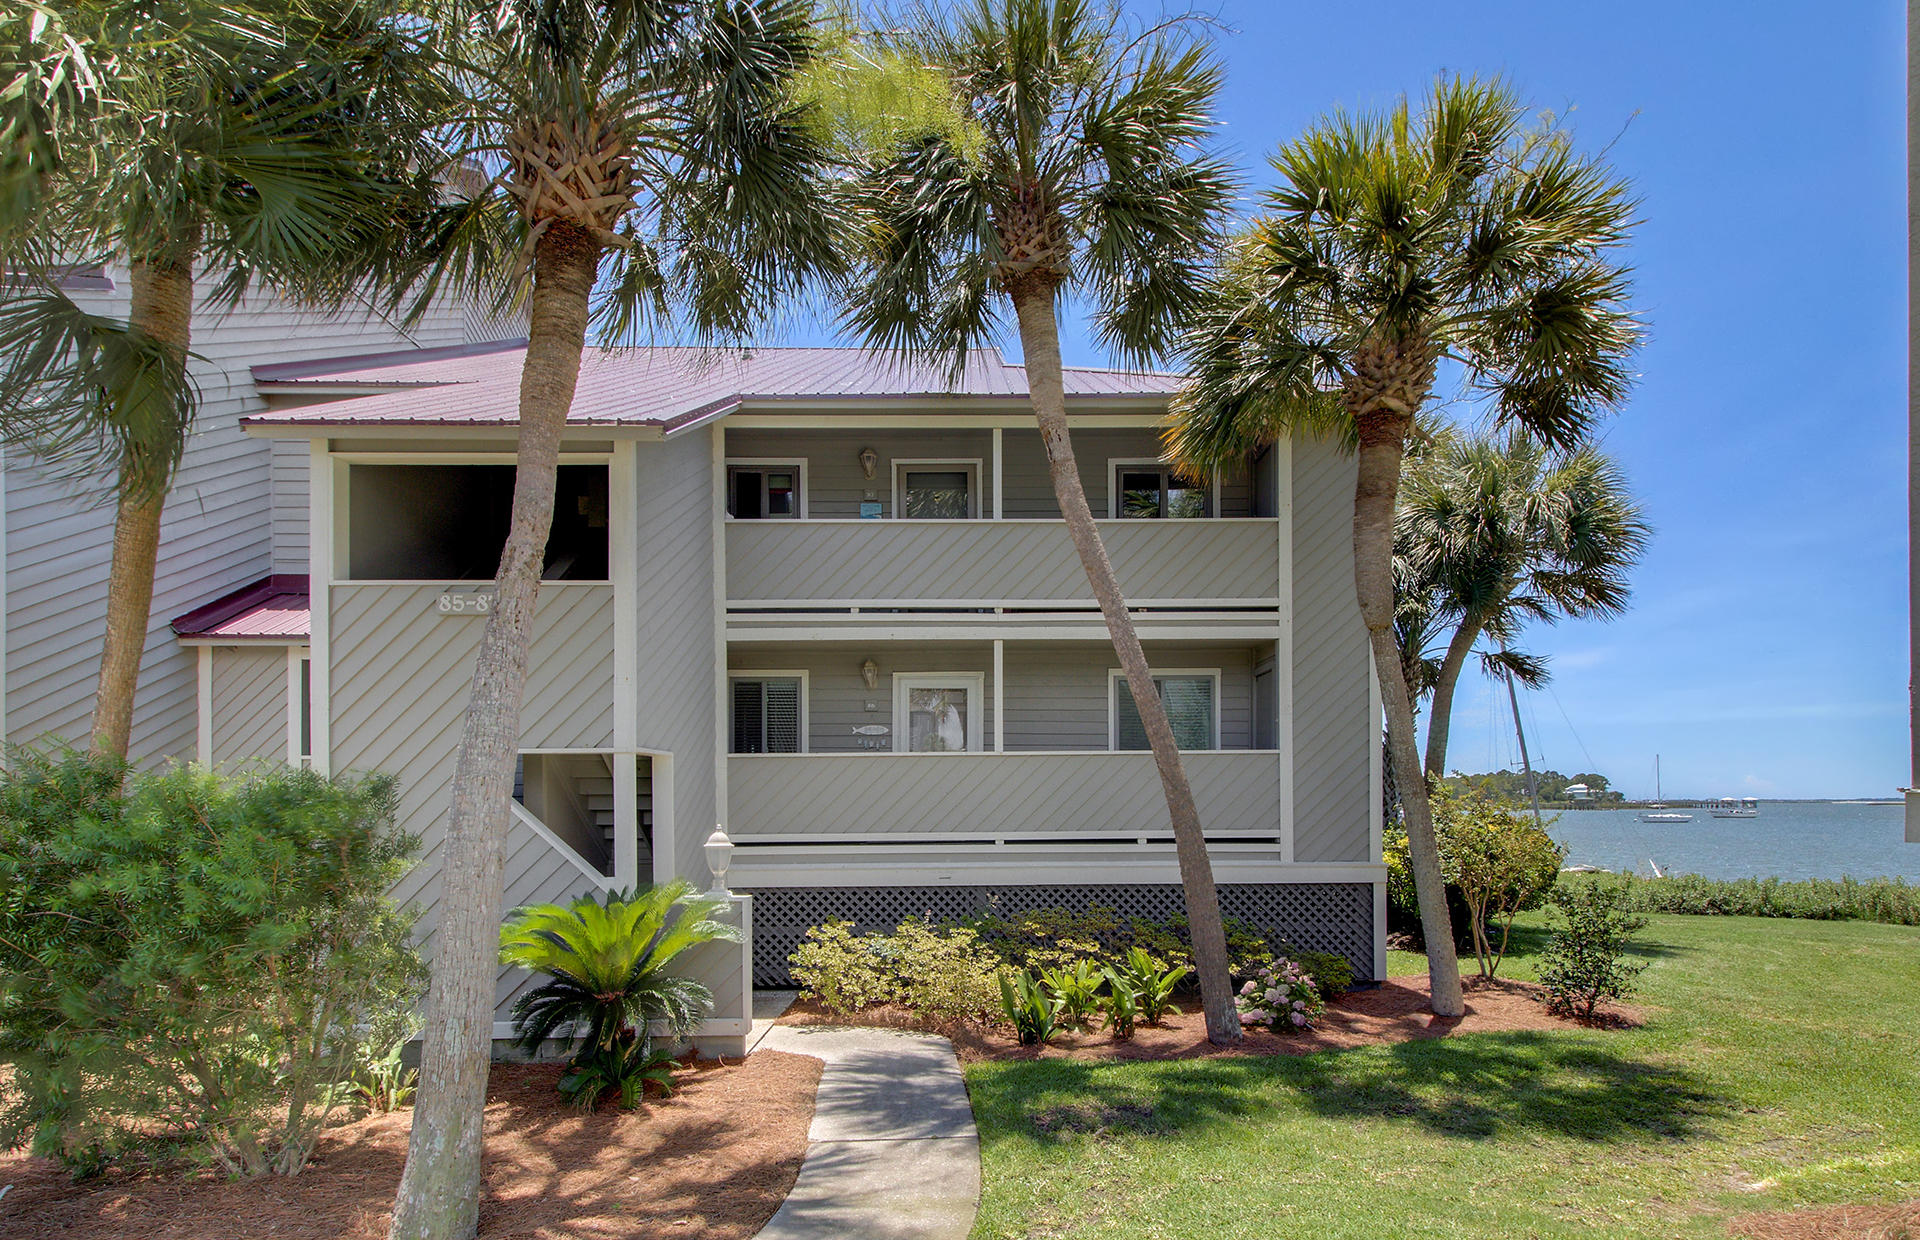 86 W Mariners Cay Drive Folly Beach, SC 29439